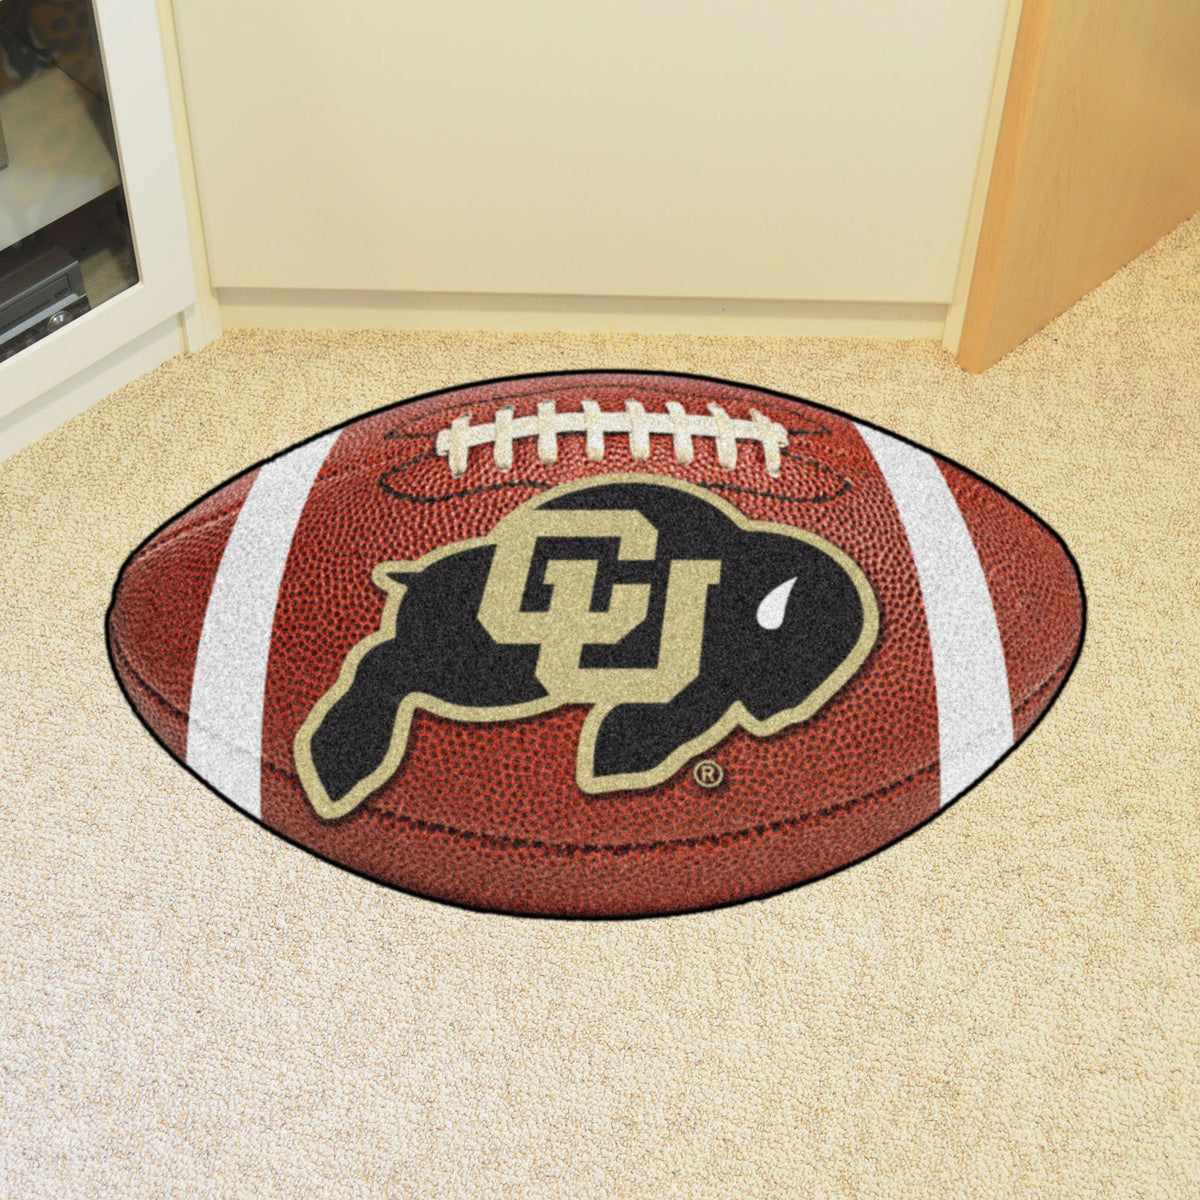 Collegiate - Football Mat: A - K Collegiate Mats, Rectangular Mats, Football Mat, Collegiate, Home Fan Mats Colorado